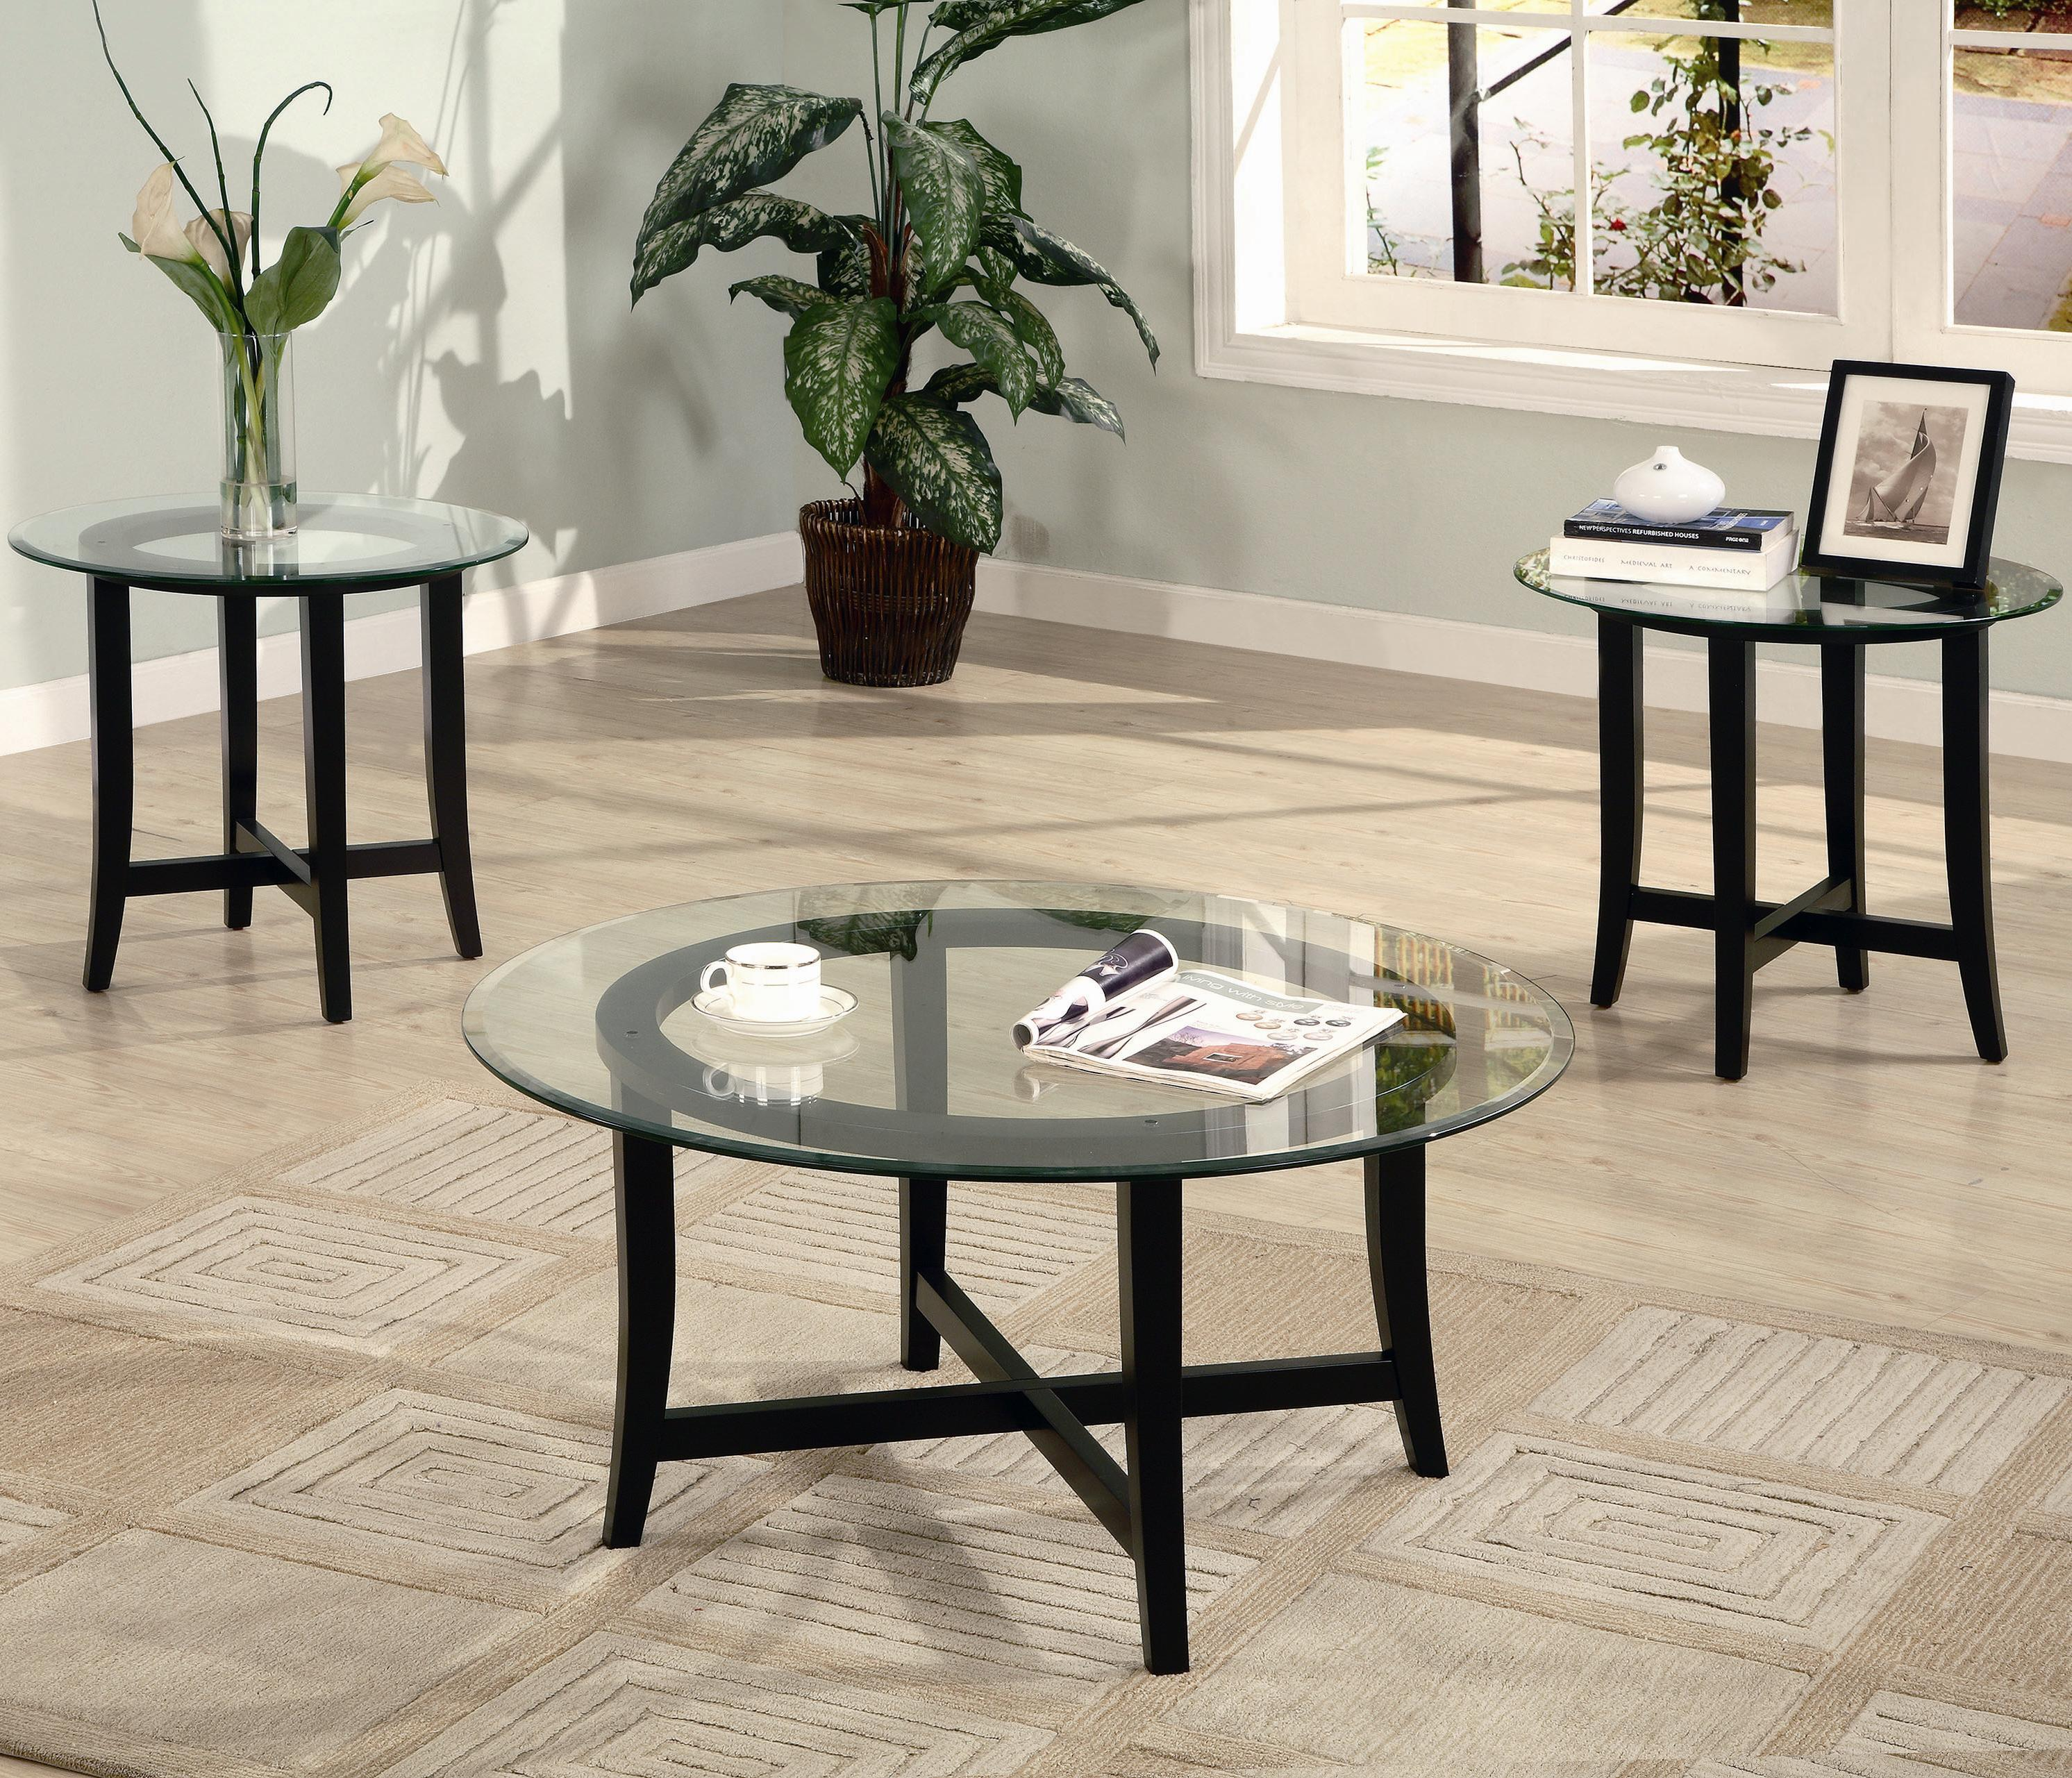 Occasional Table Sets (3 piece table sets) by Coaster - Adcock Furniture - Coaster Occasional Table Sets Dealer & Occasional Table Sets (3 piece table sets) by Coaster - Adcock ...